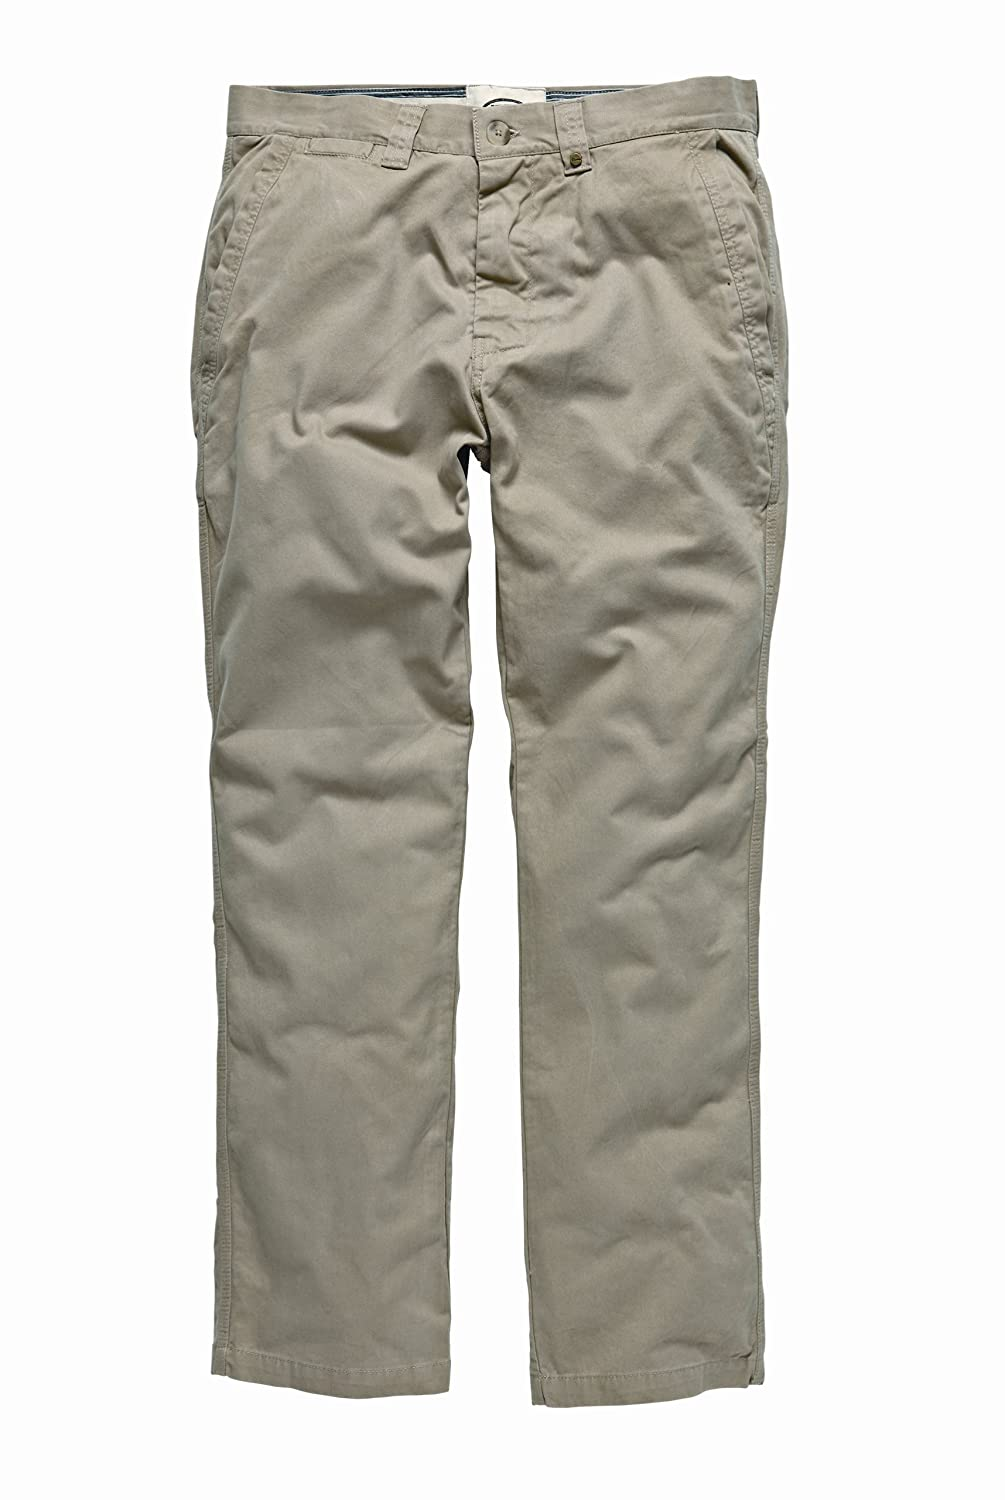 Dickies Men's Chinohose Vintage Sports Trousers